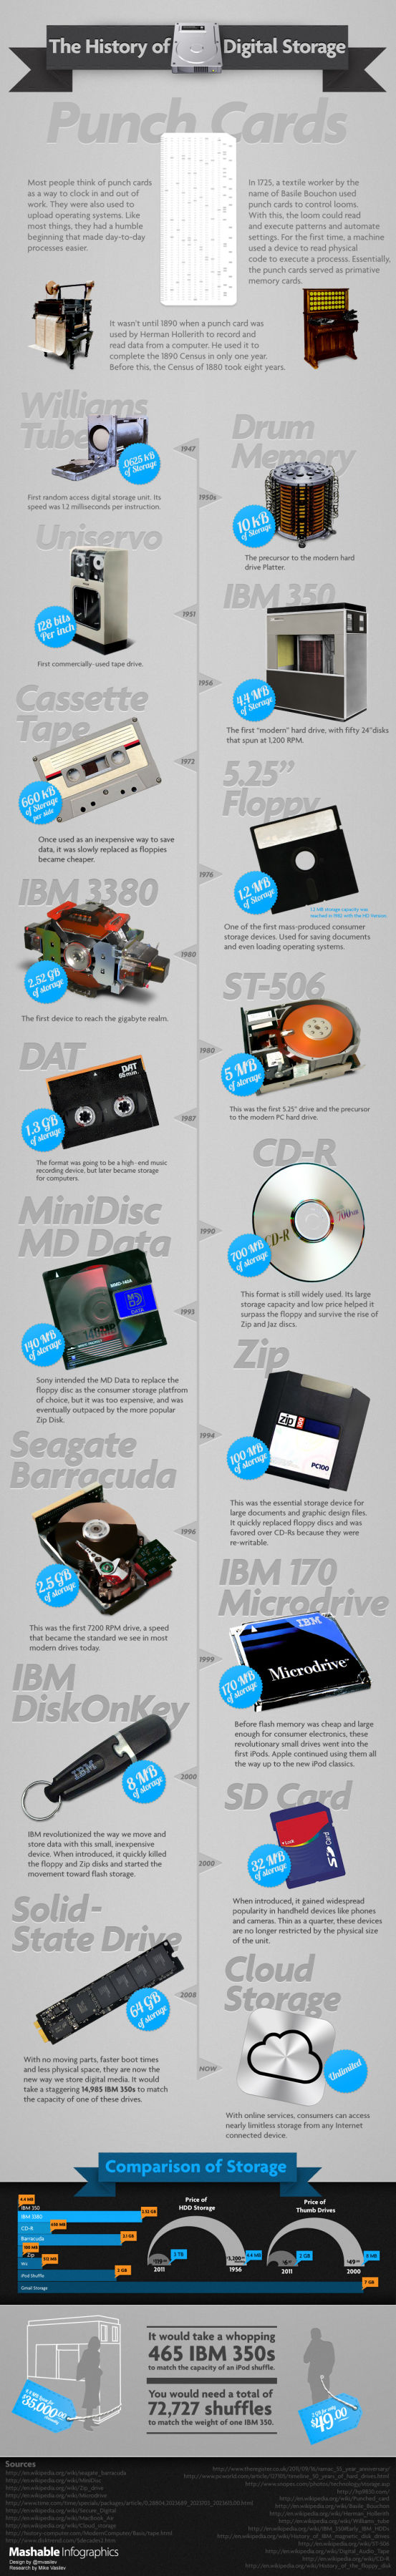 Read History of Digital Storage | Infographic